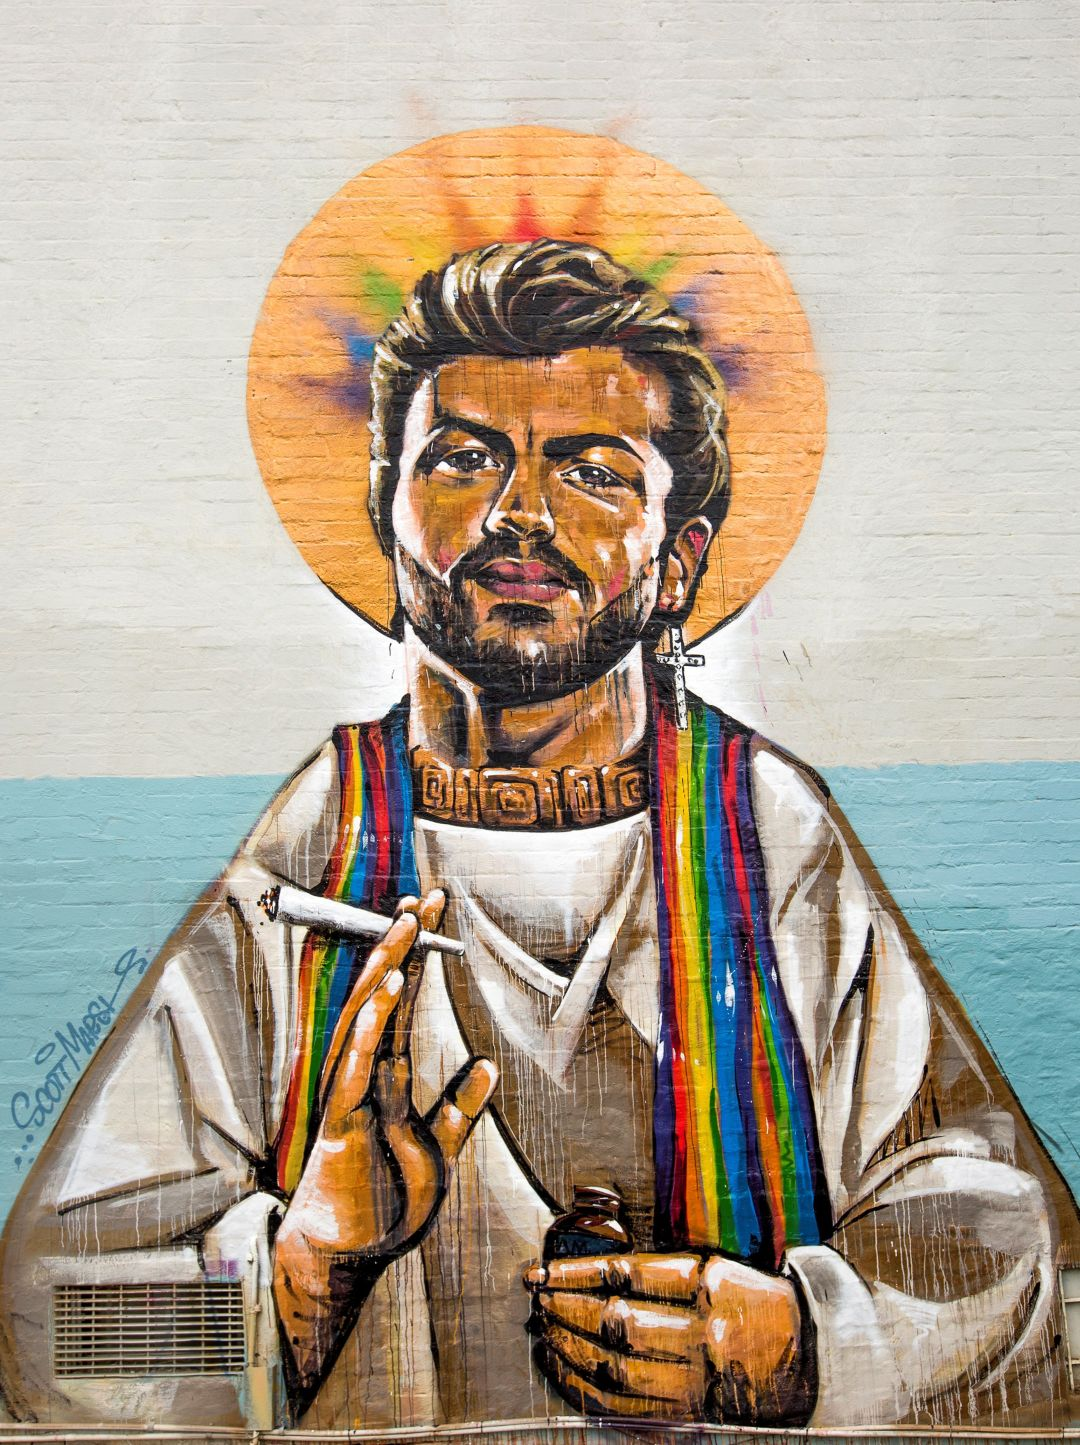 George Michael in priestly robes with a cross dangling from one ear, his head surrounded by a rainbow-coloured halo and smoking marijuana